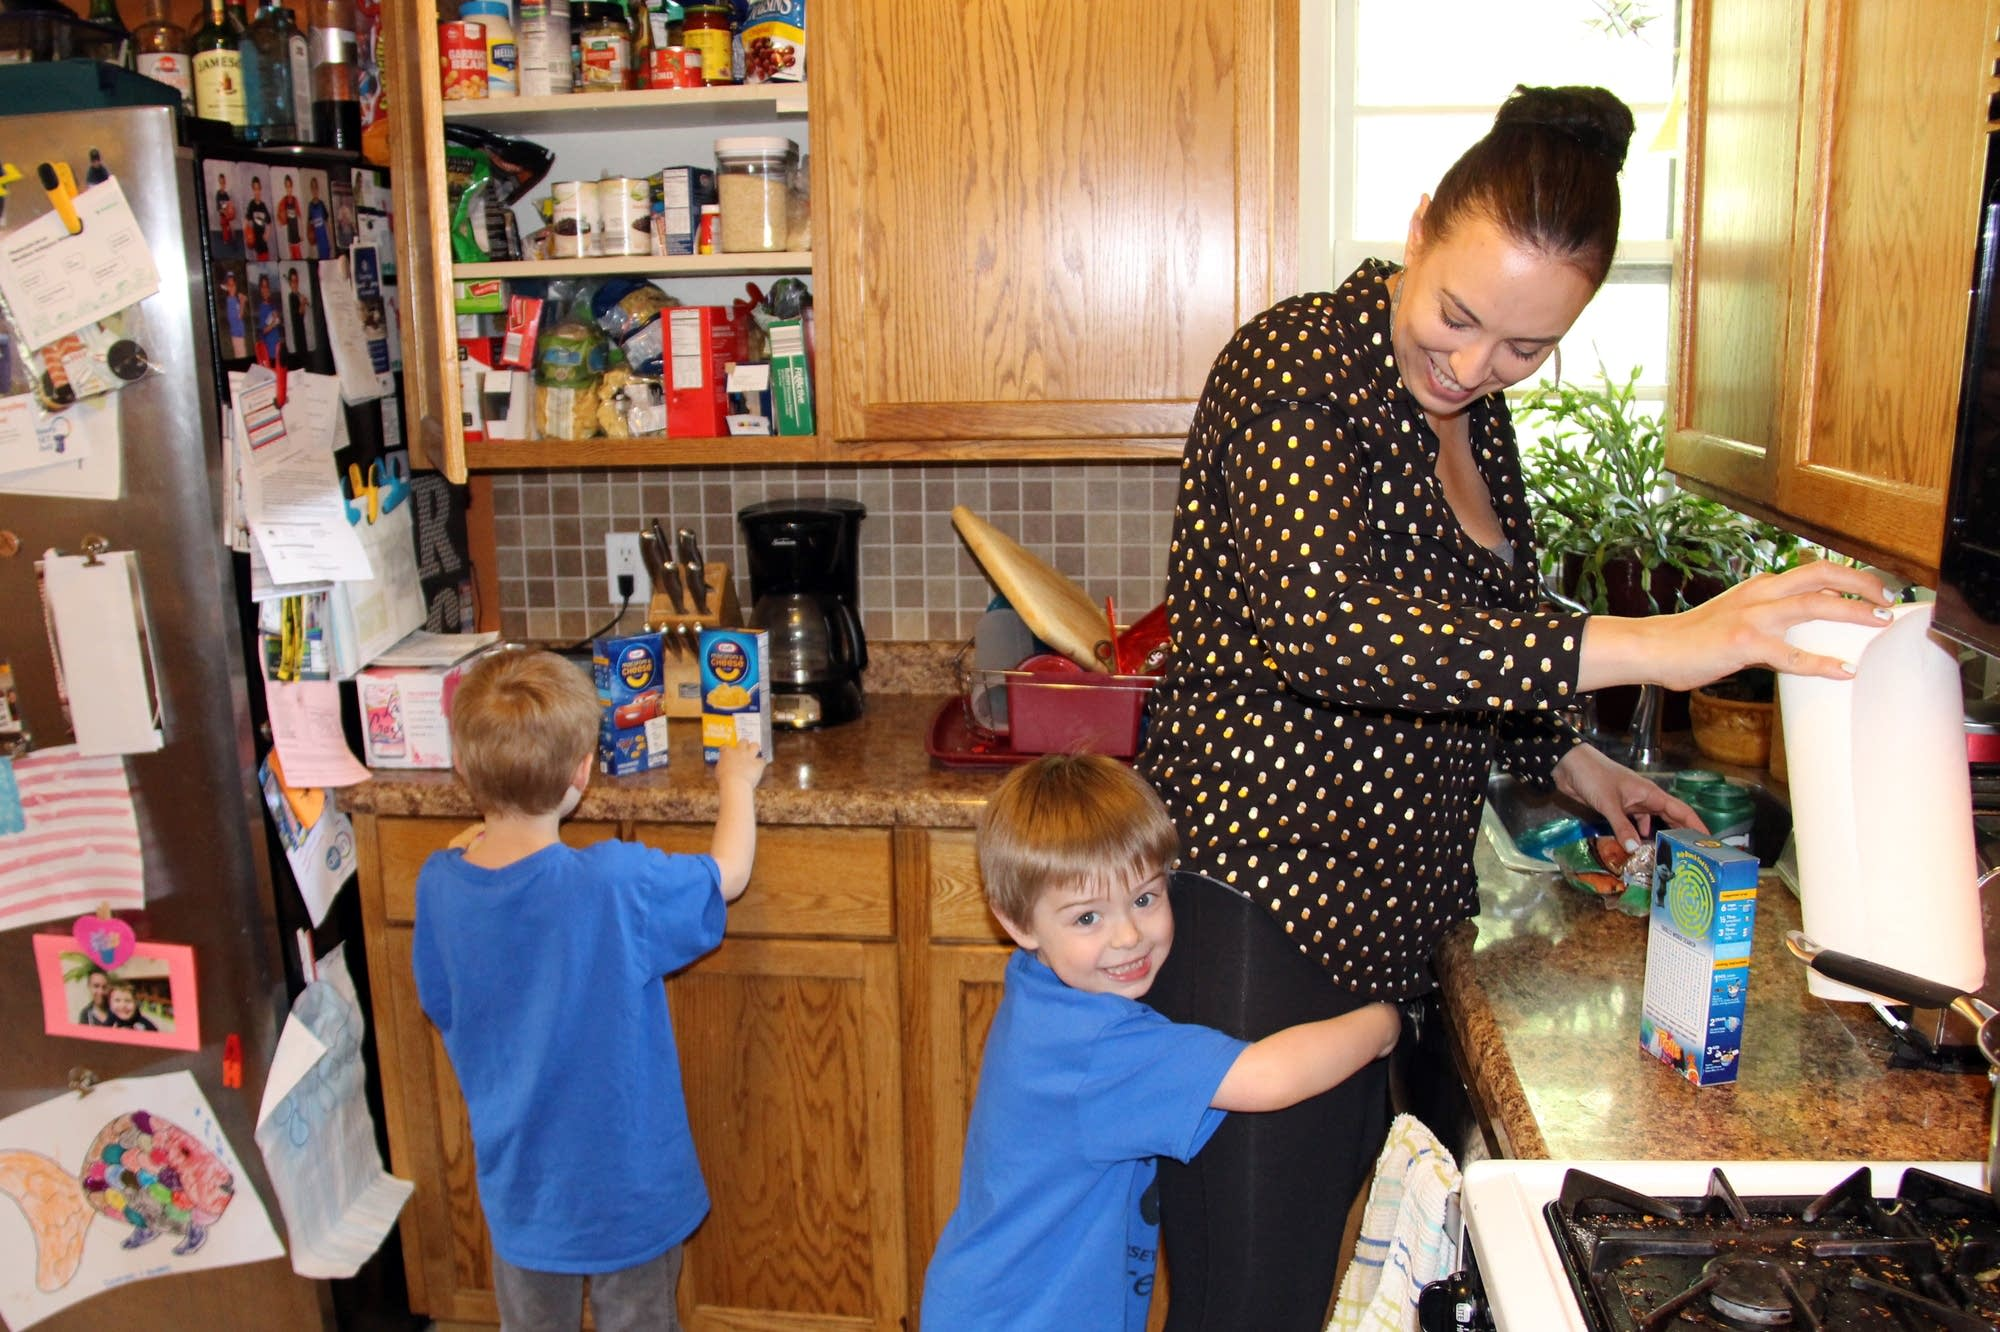 Ruth DeFoster, 32, and her four-year-old twins Dominic and Anthony